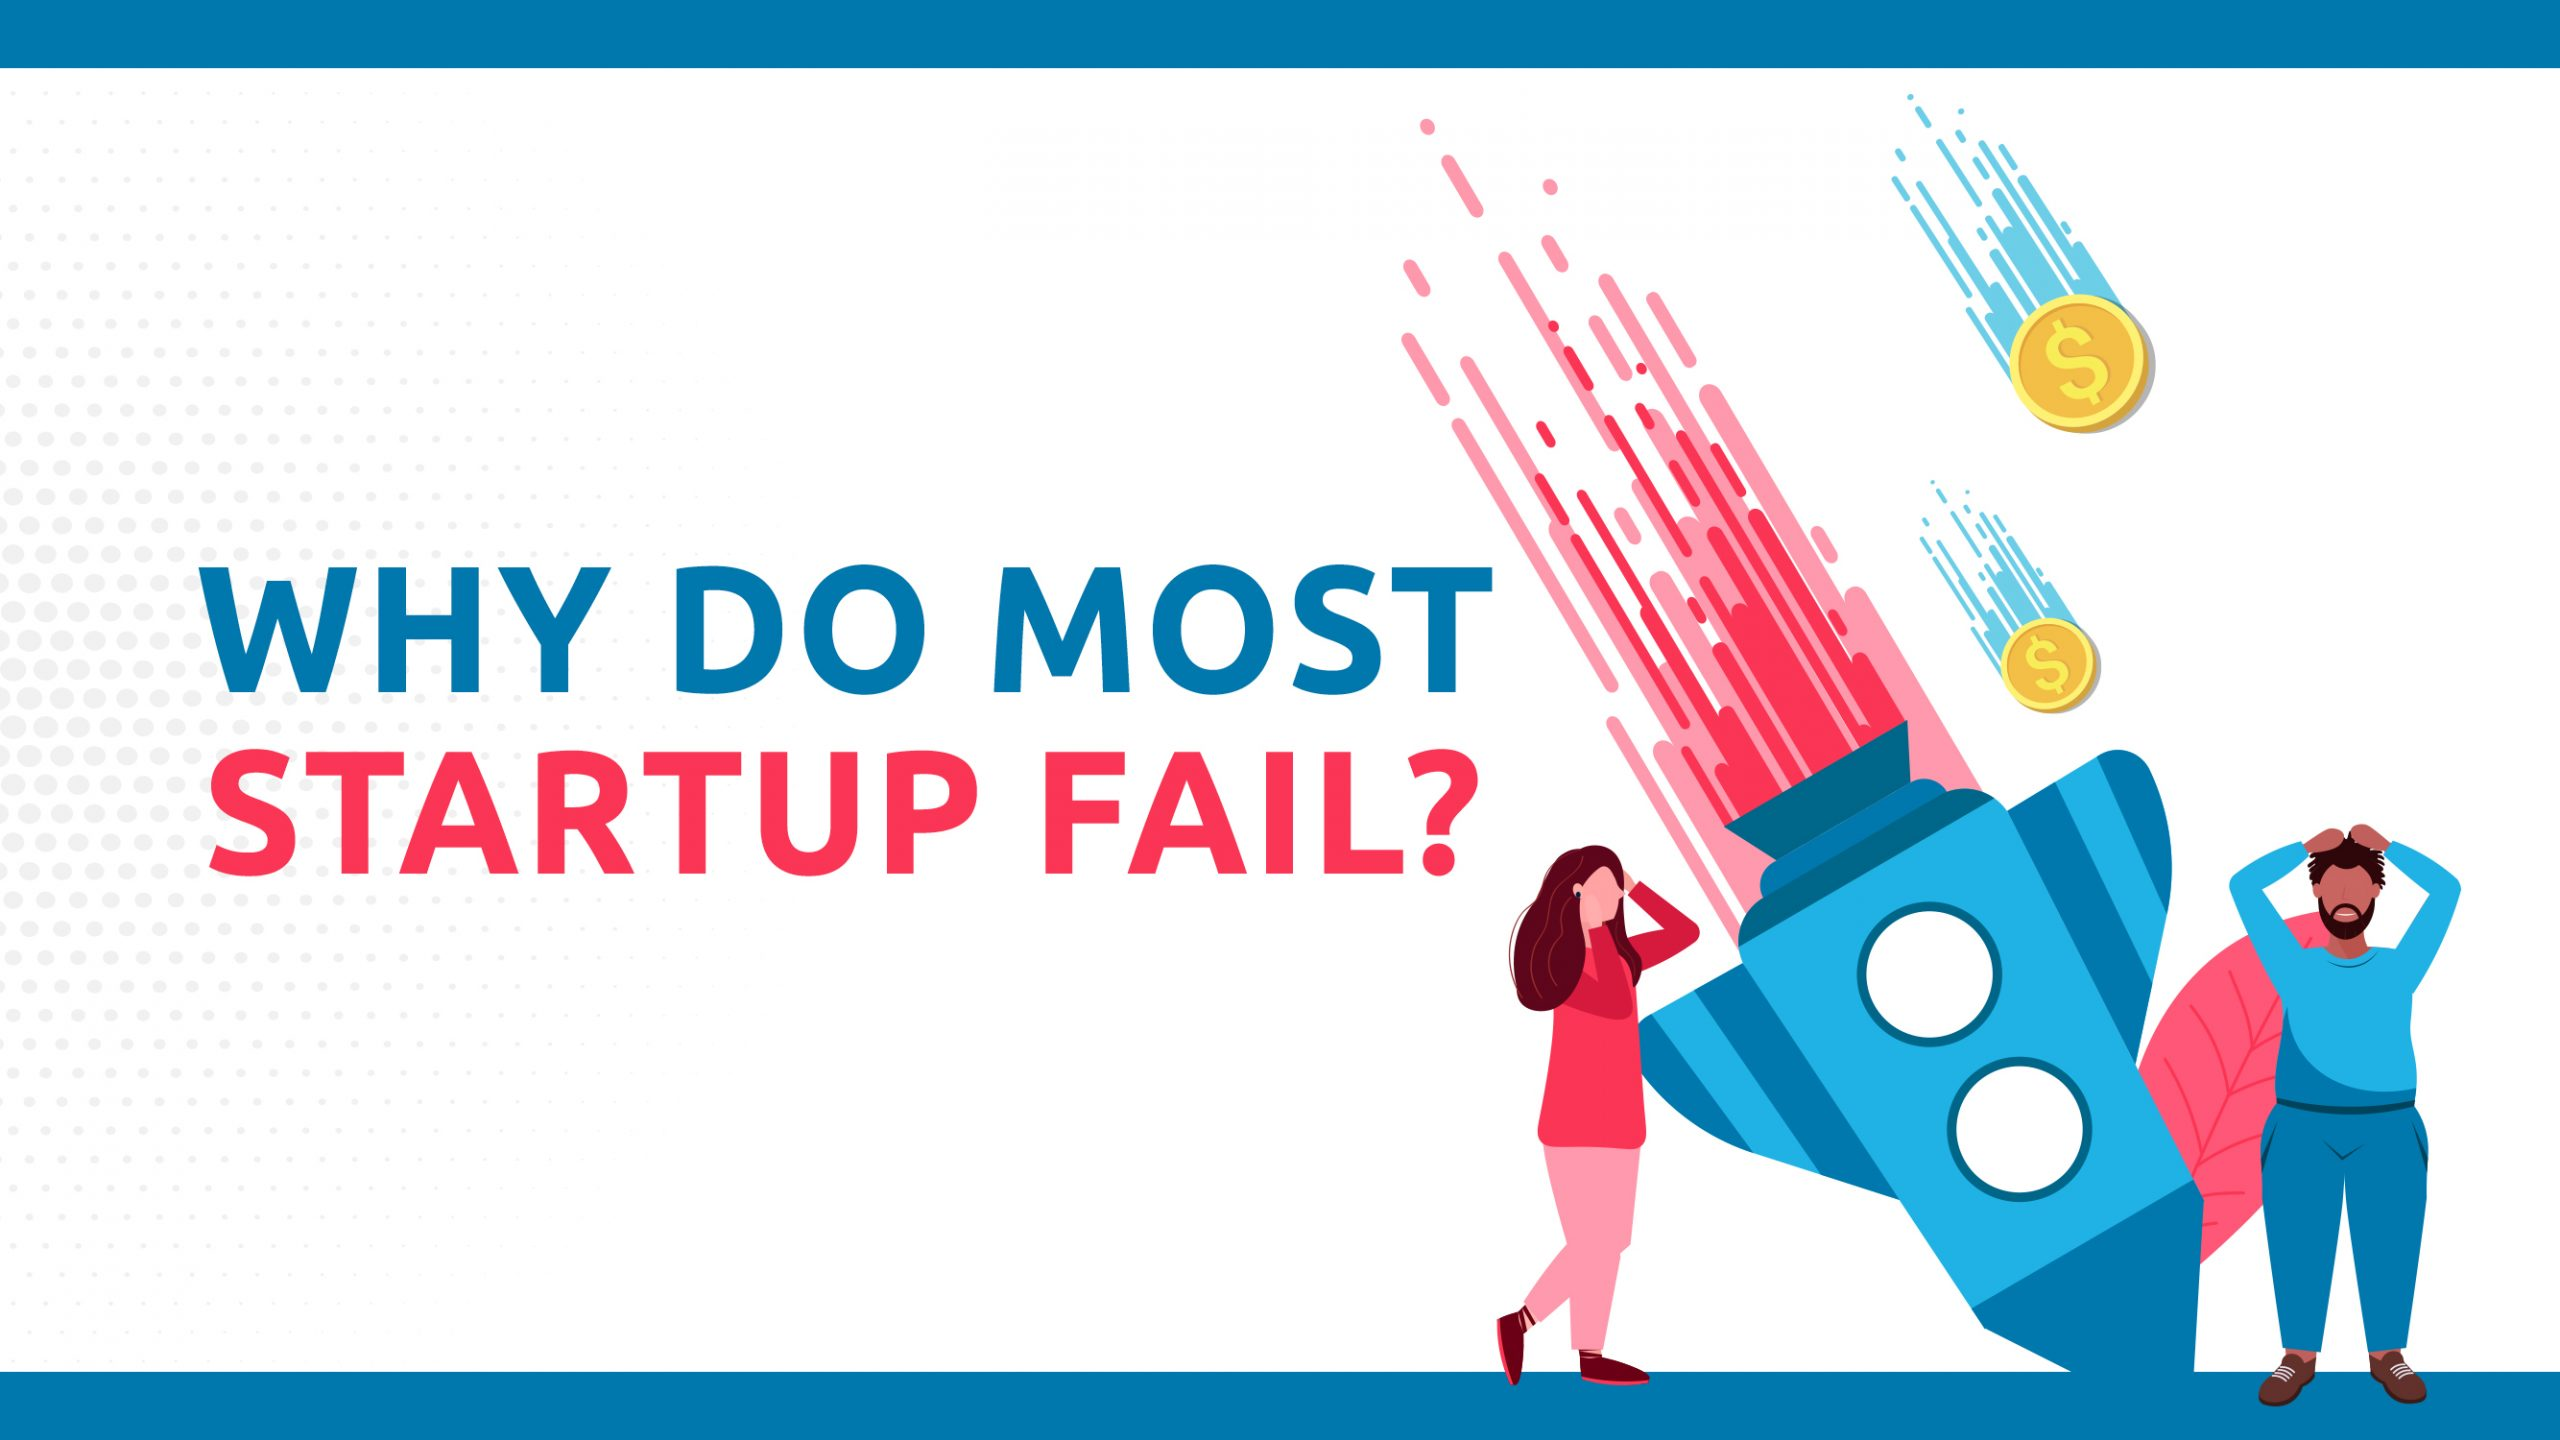 Why Do Most Startups Fail?